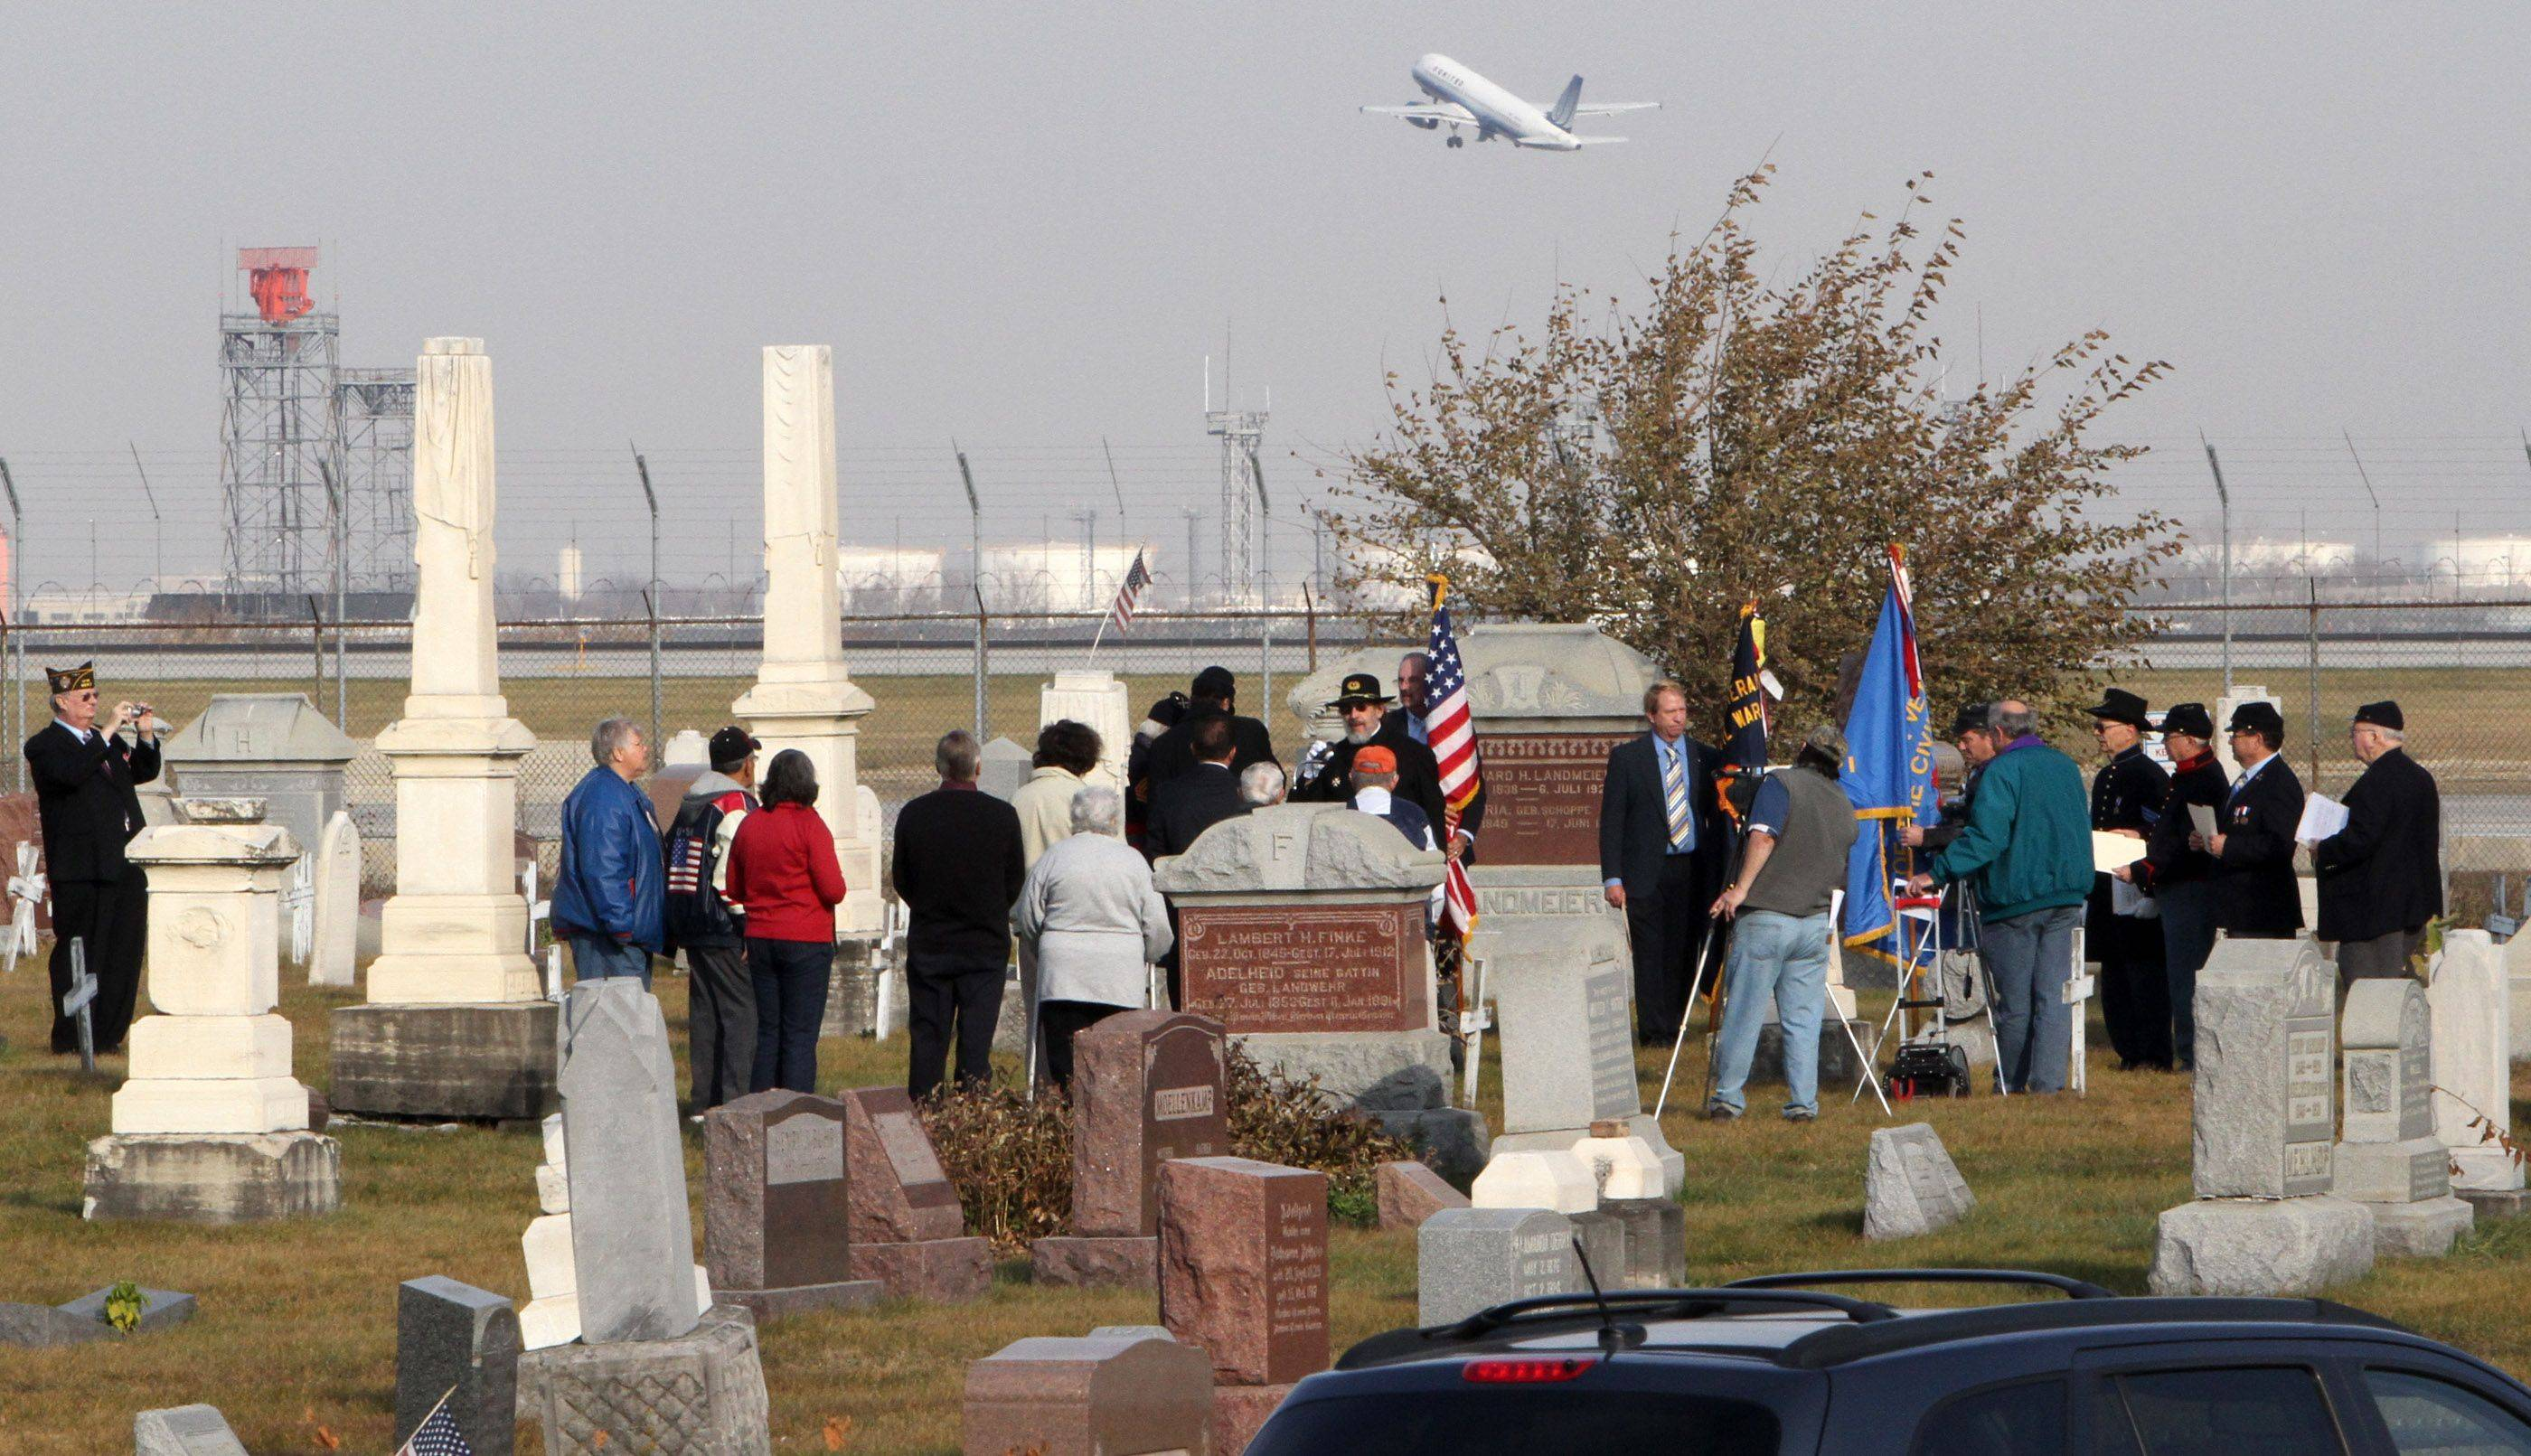 National Chaplain for the Sons of Union Veterans of the Civil War held a memorial ceremony on Veterans Day at Johannes Cemetery just south of Chicago O'Hare International Airport on Thursday, November 11.